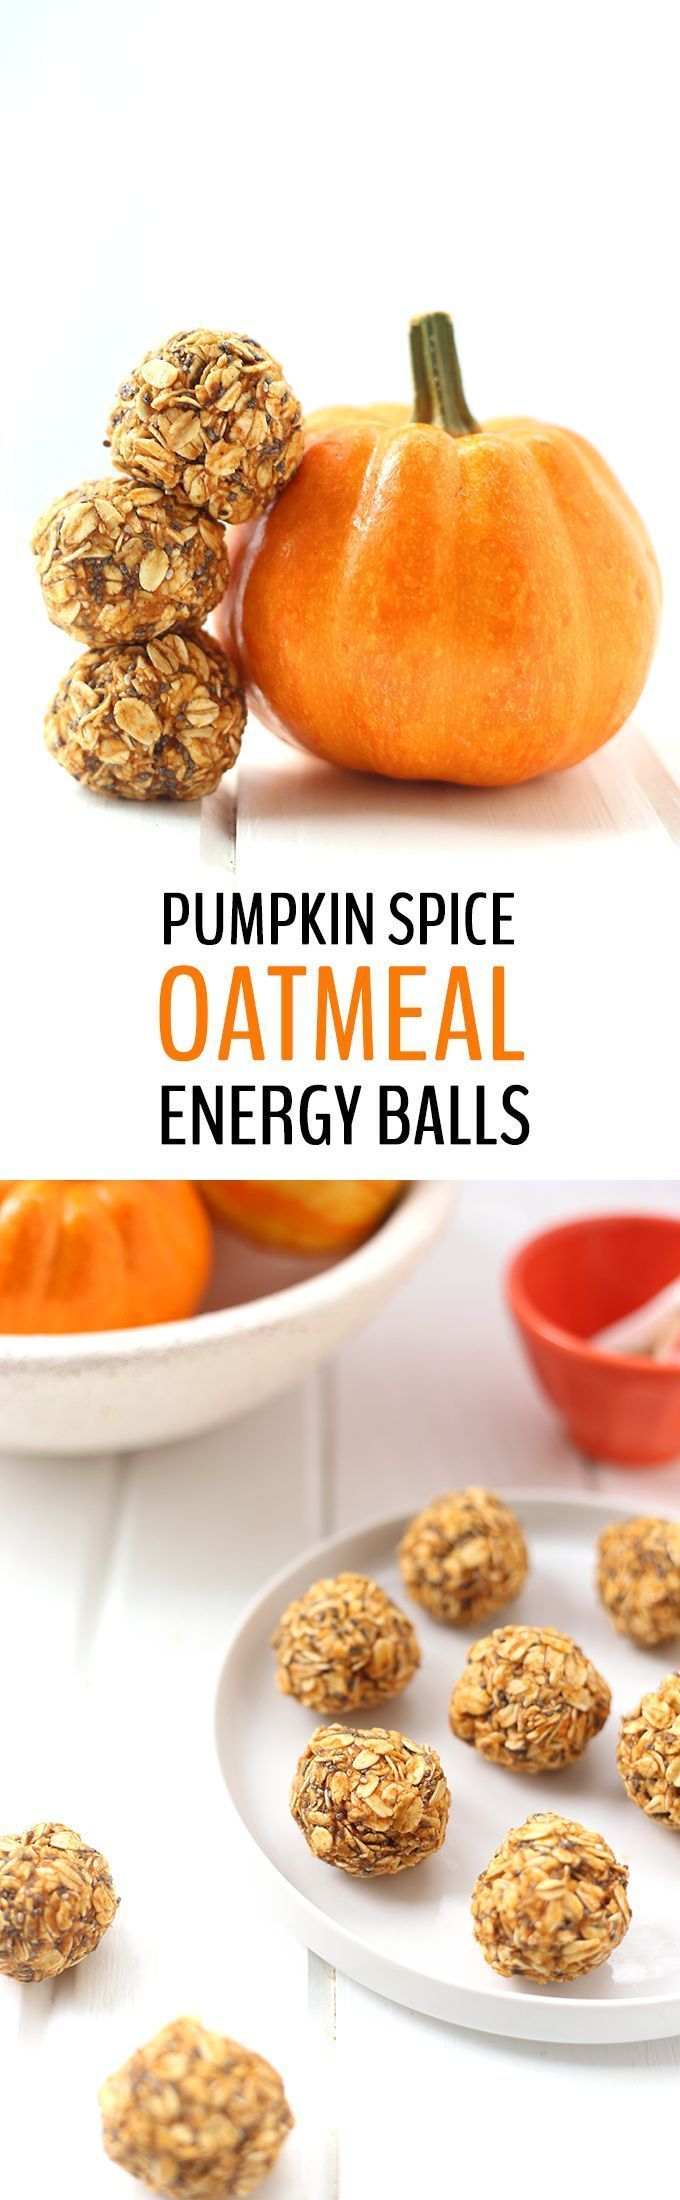 Your favorite seasonal latte just got a makeover! These Pumpkin Spice Oatmeal Energy Balls made with pureed pumpkin, oatmeal and pumpkin spice will keep you satisfied all season long.